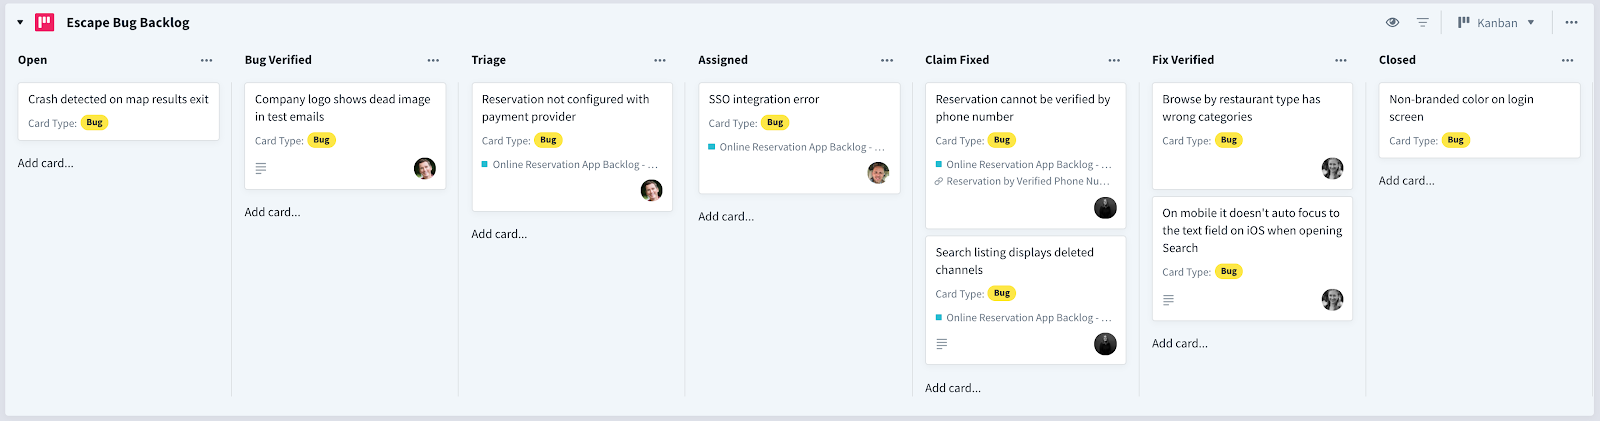 Escaped bug backlog switched to Kanban view